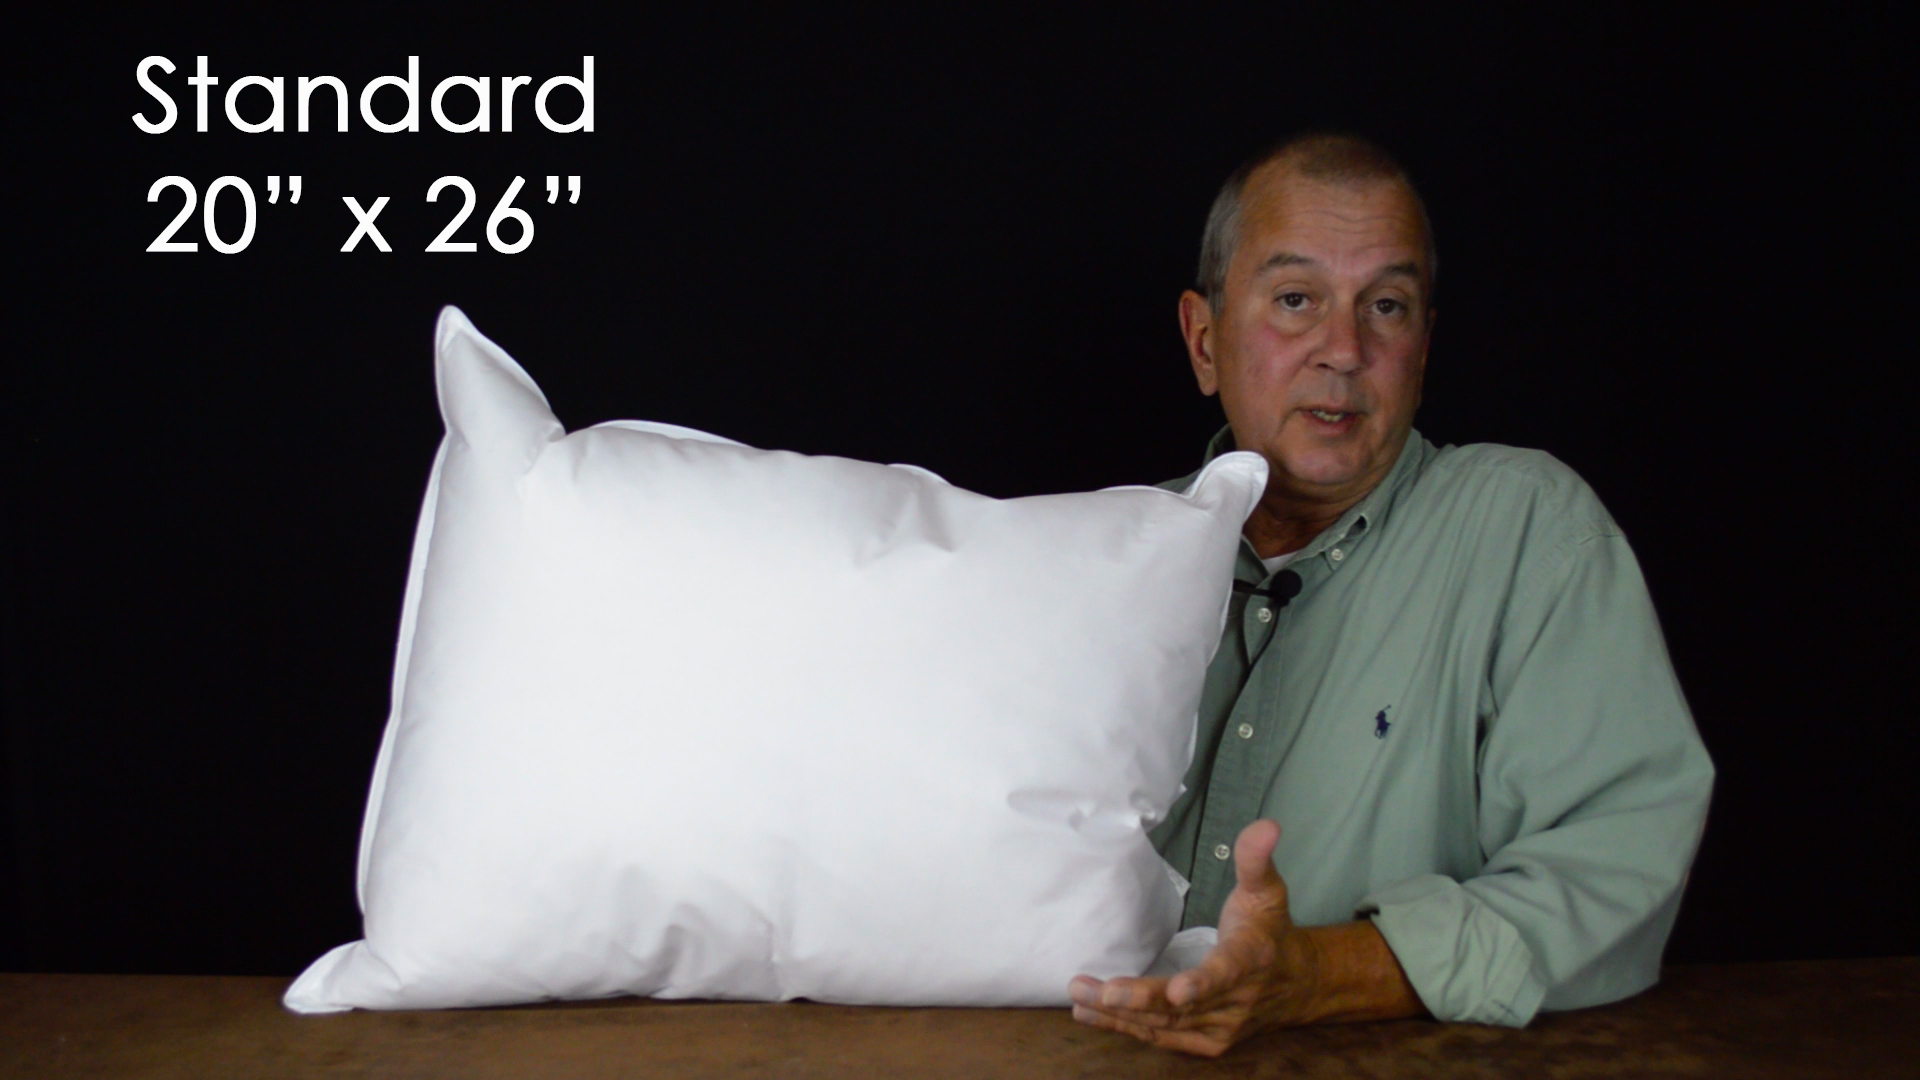 Standard pillows are 20